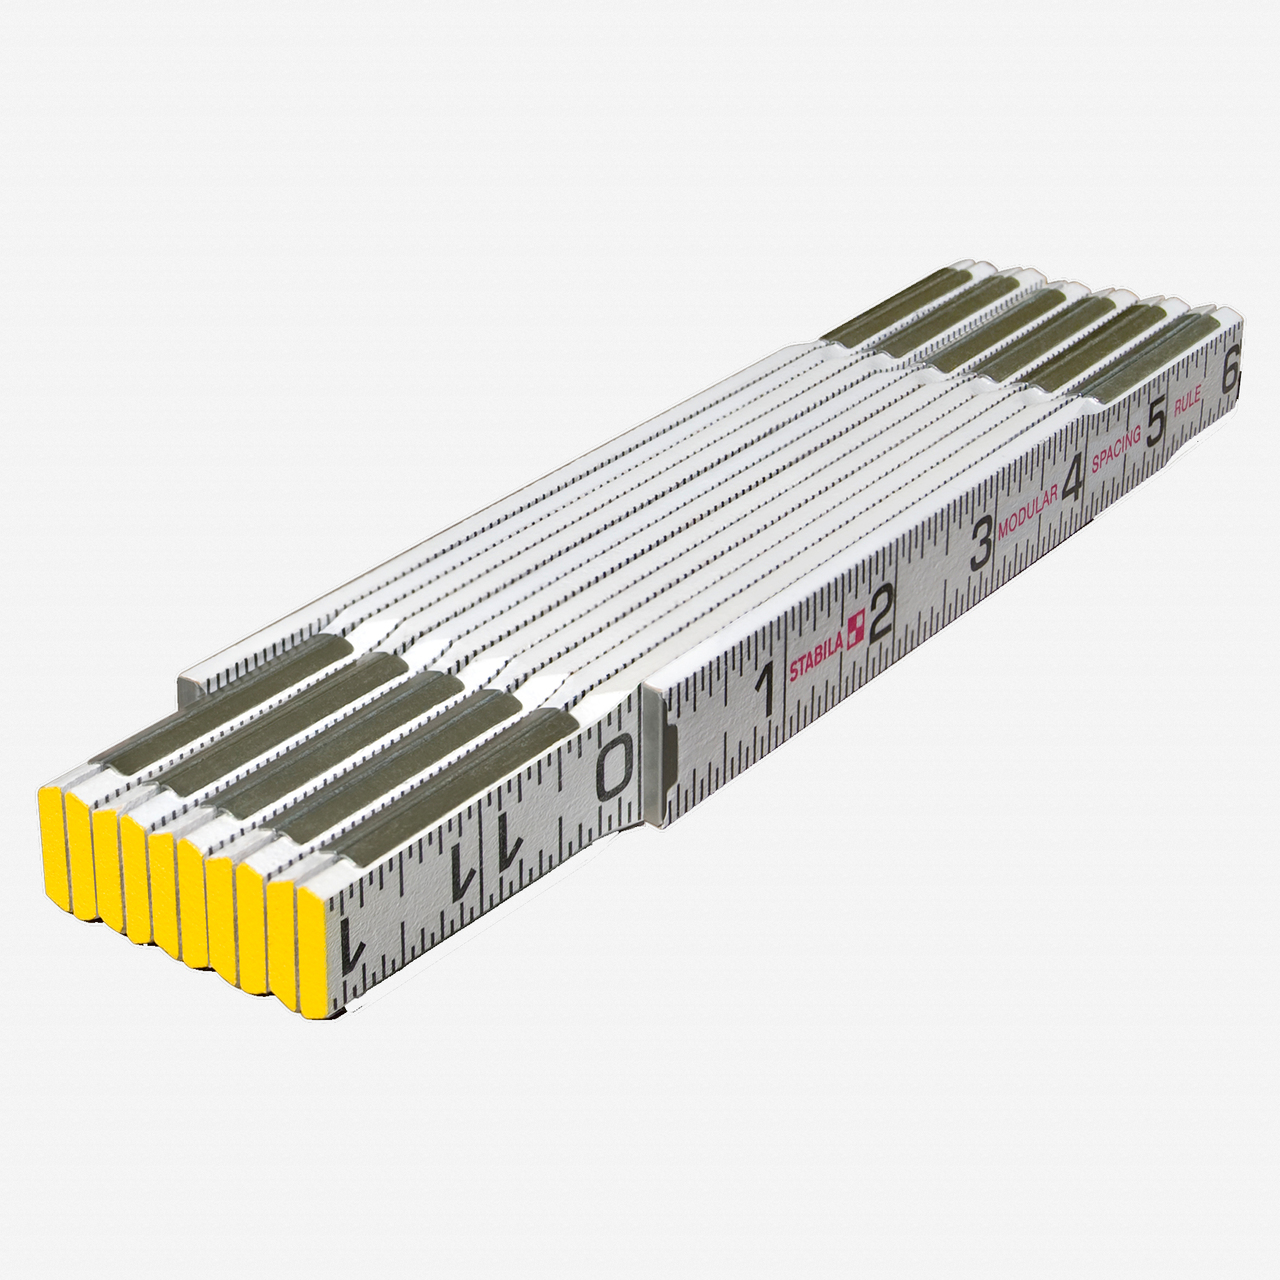 Stabila 80010 Type 600 Modular Spacing Folding Ruler - KC Tool